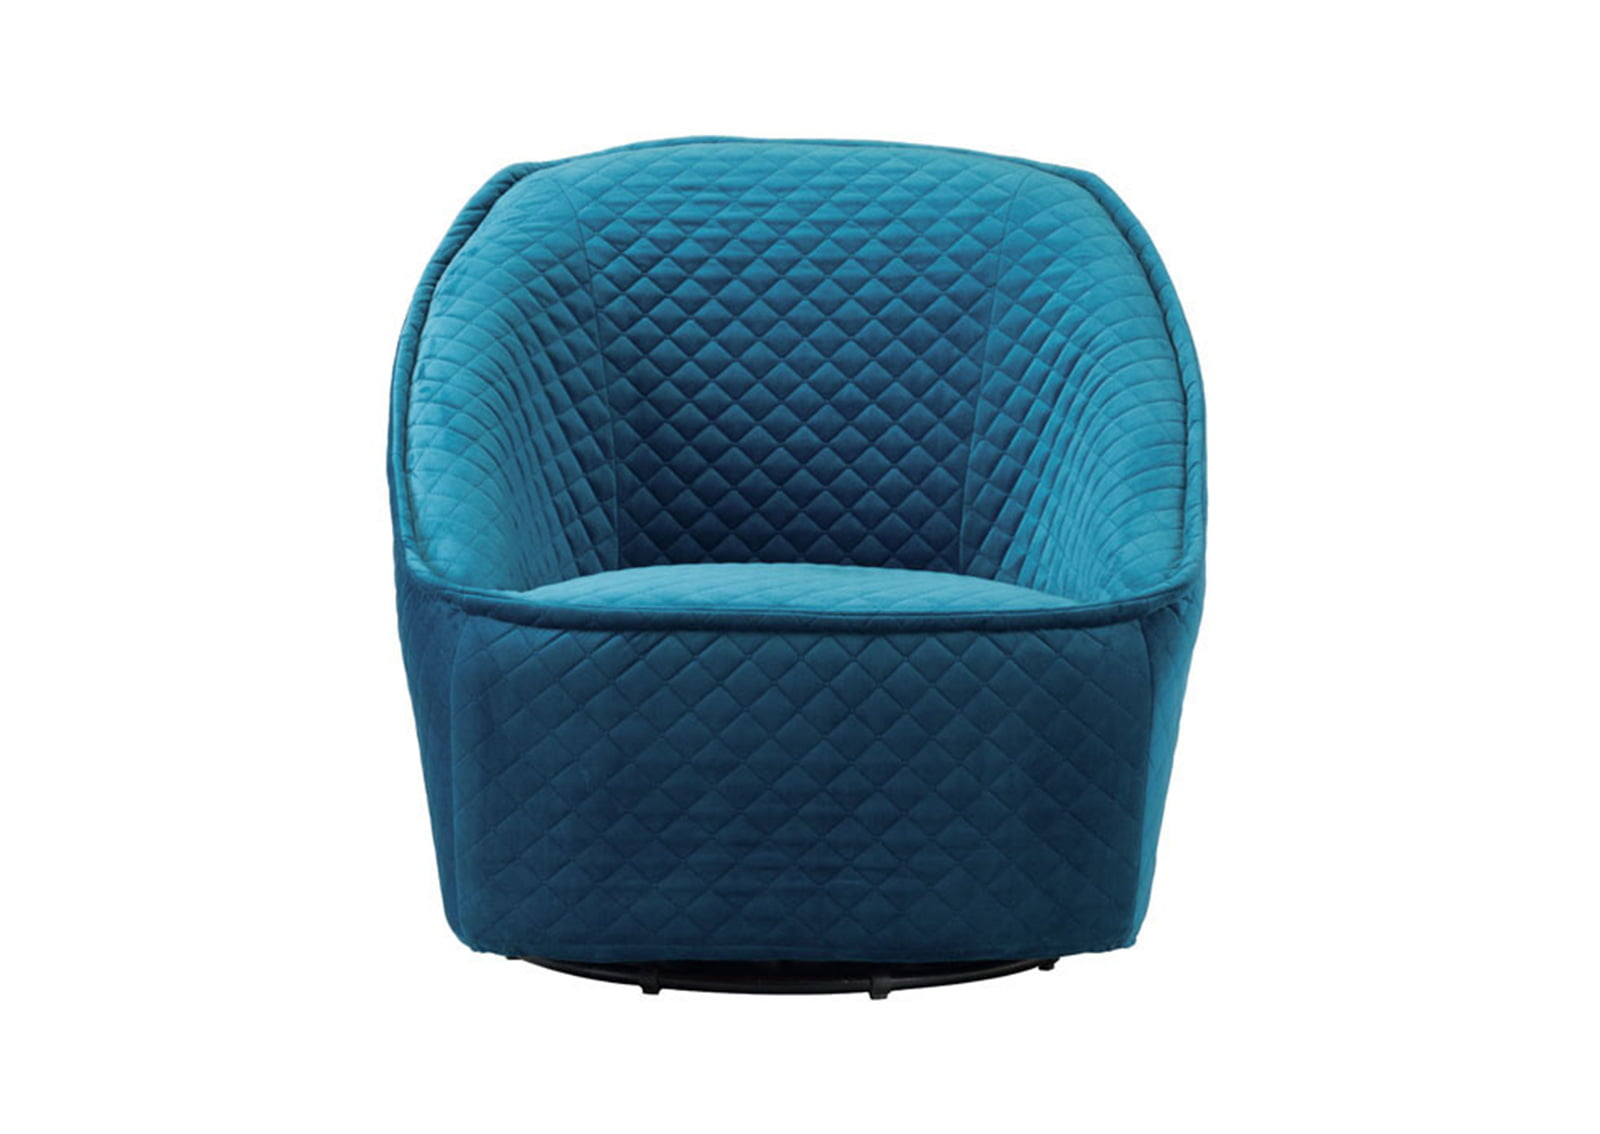 Pug Swivel Chair Aquamarine Furnishplus